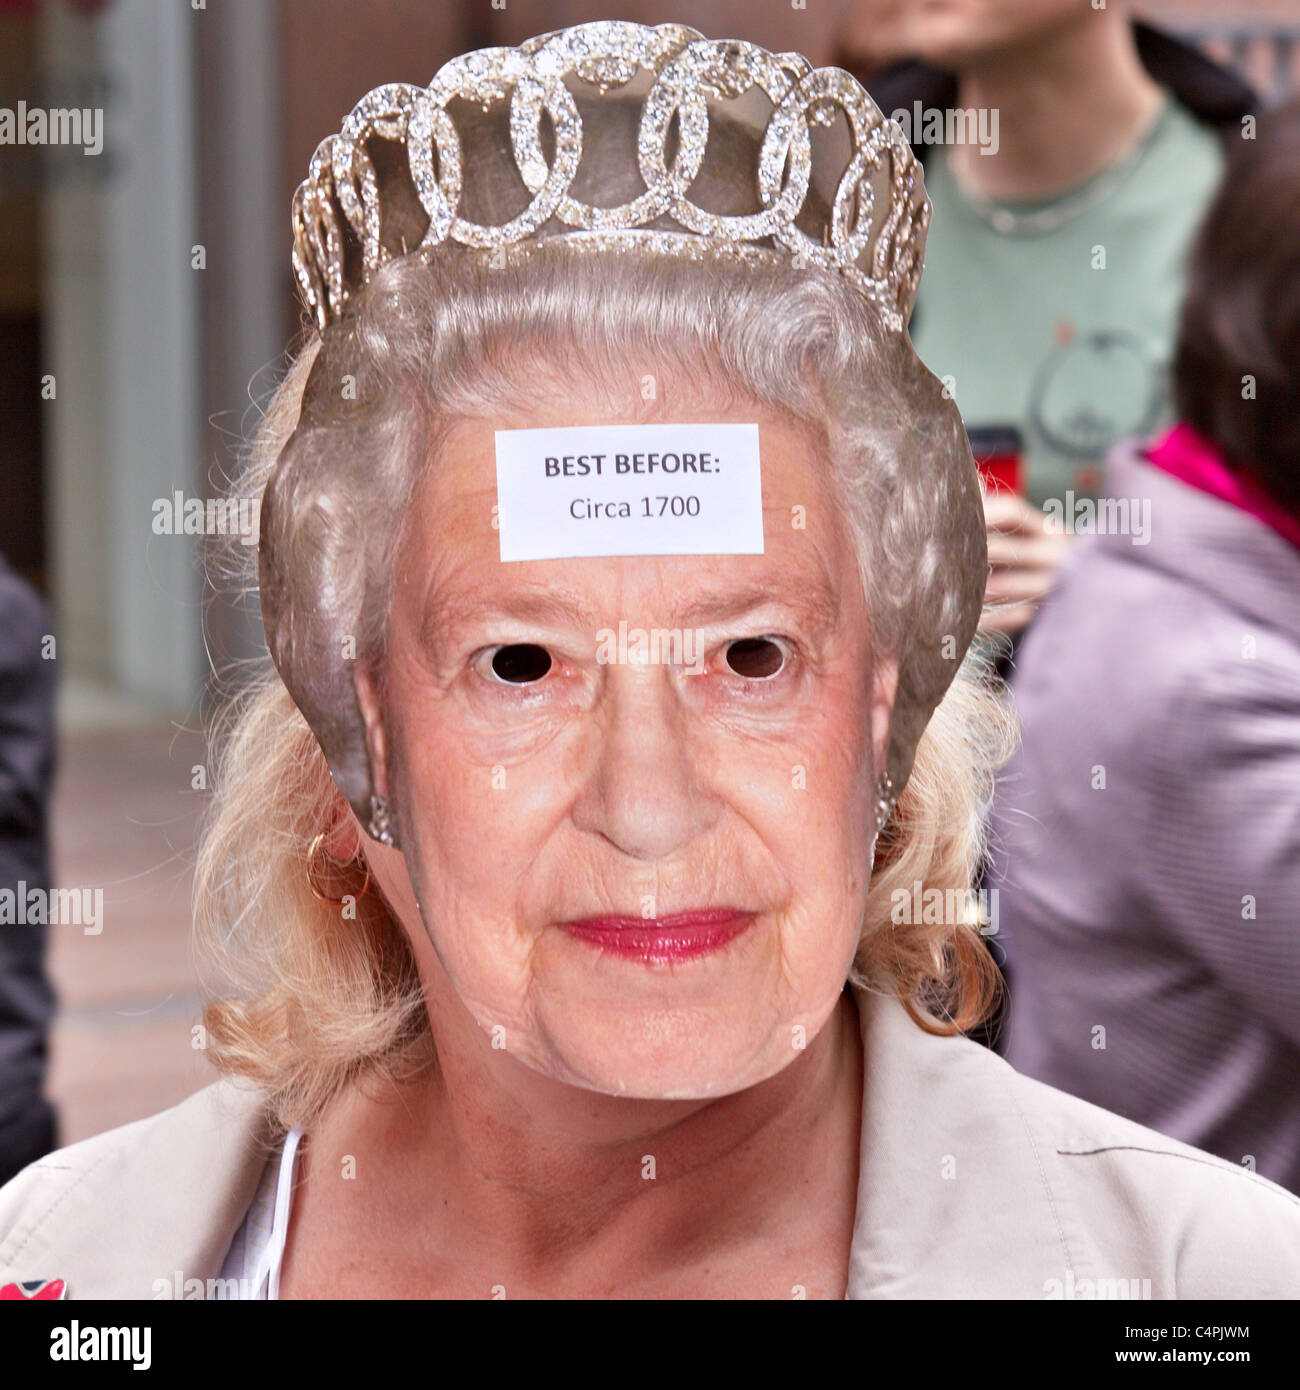 Royal Wedding 2011: A supporter of turning the UK in a republic wears a Queen Mask with a best before the year 1700 Stock Photo